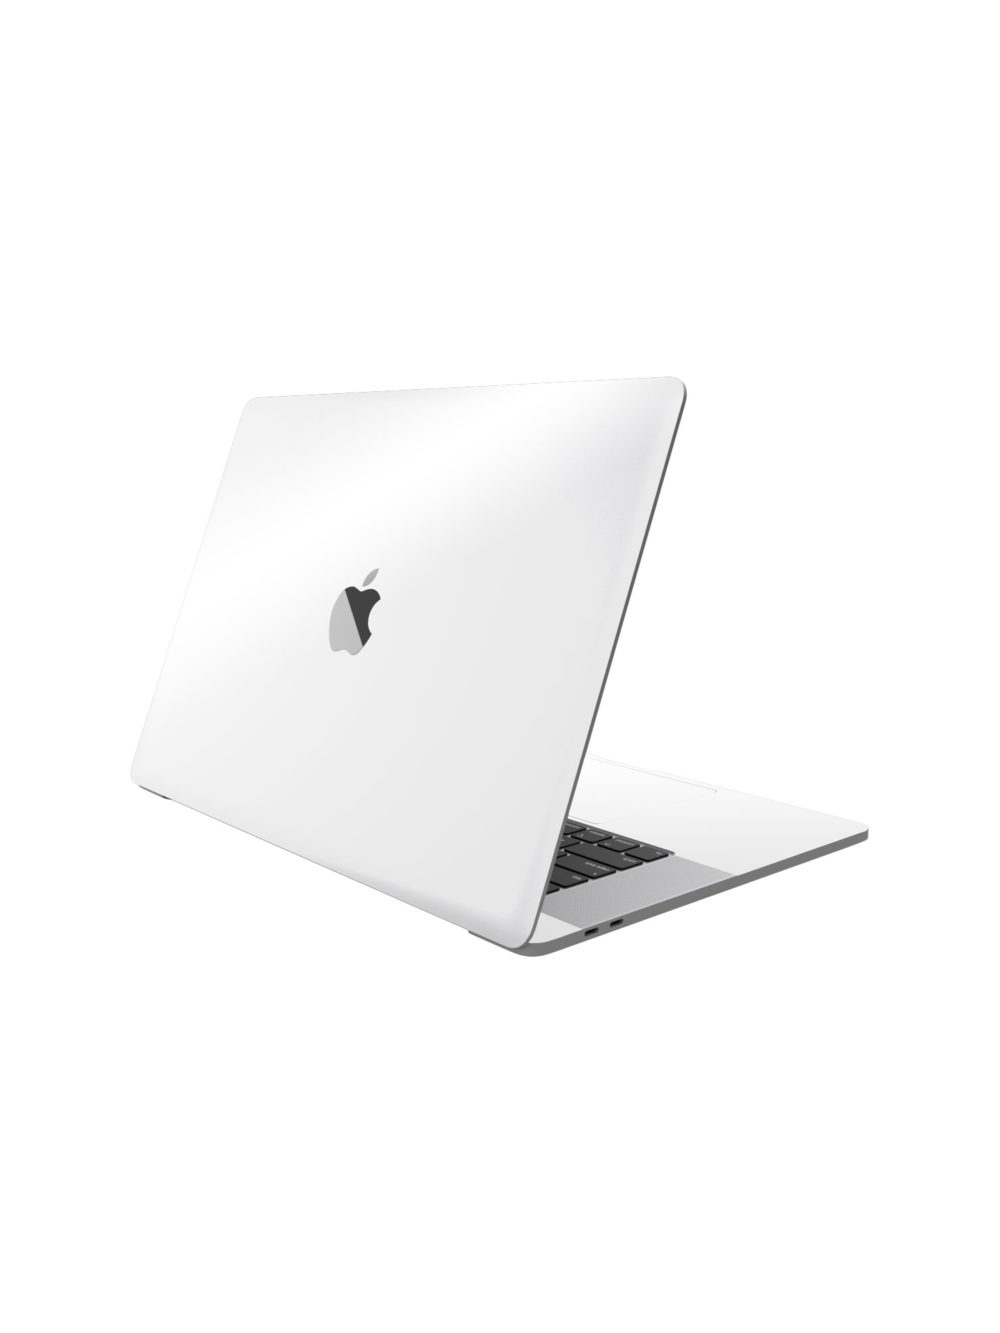 Gloss white Skin Macbook Pro M1 Skin Wrap Cover